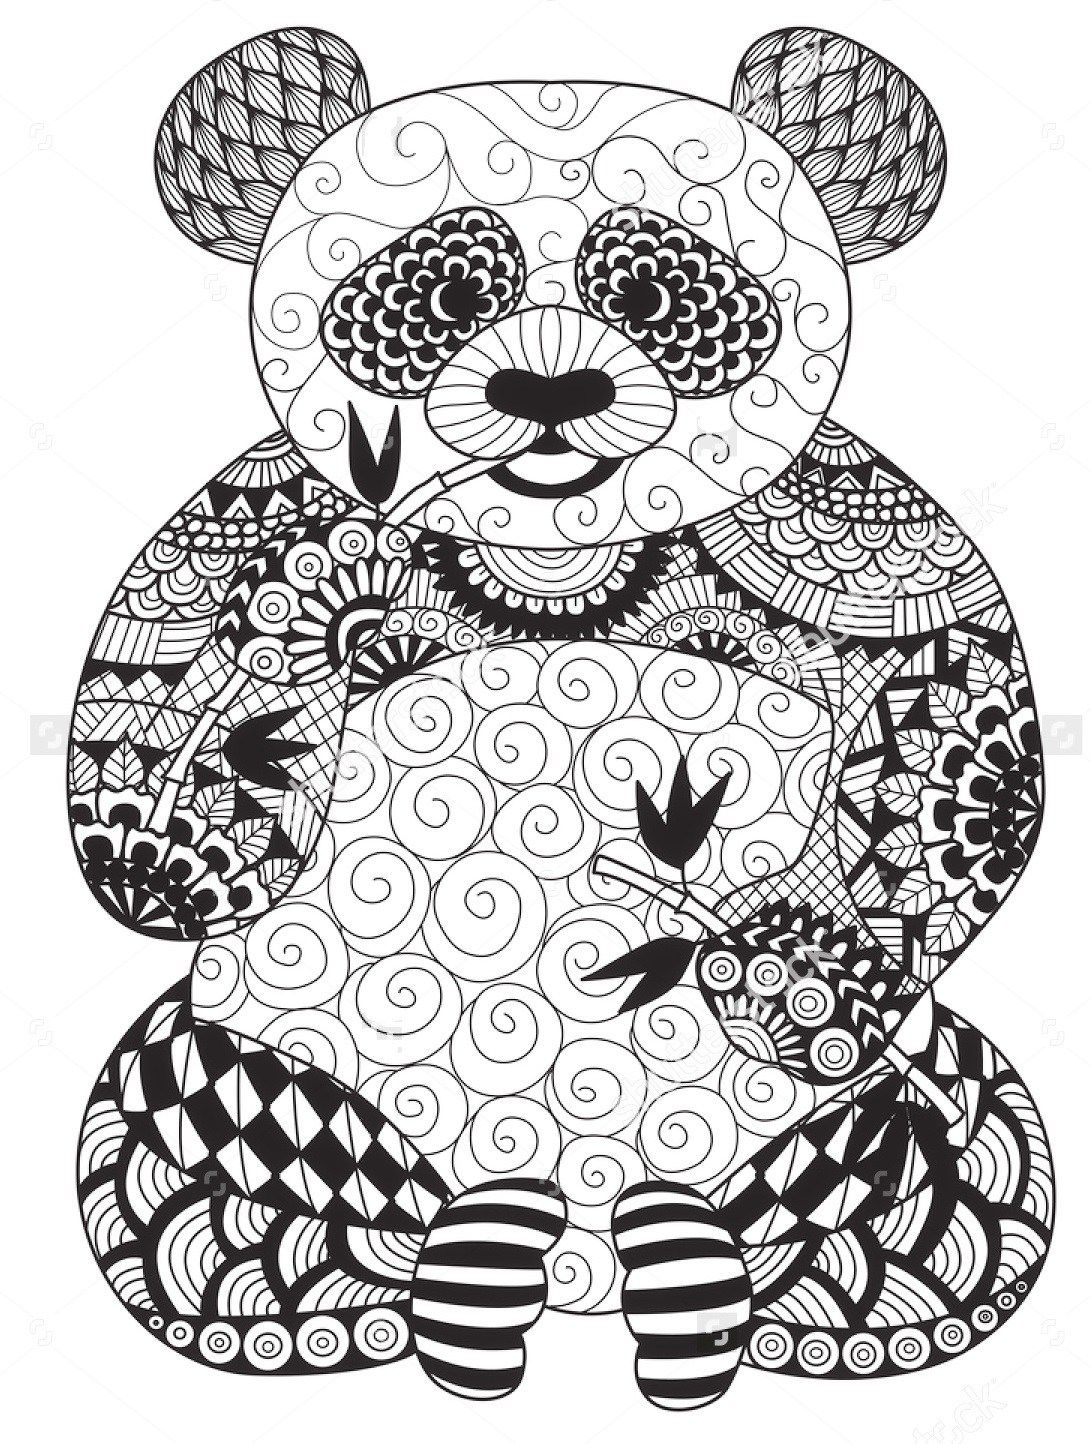 Vector Zentangle Panda Coloring Page With Images Panda